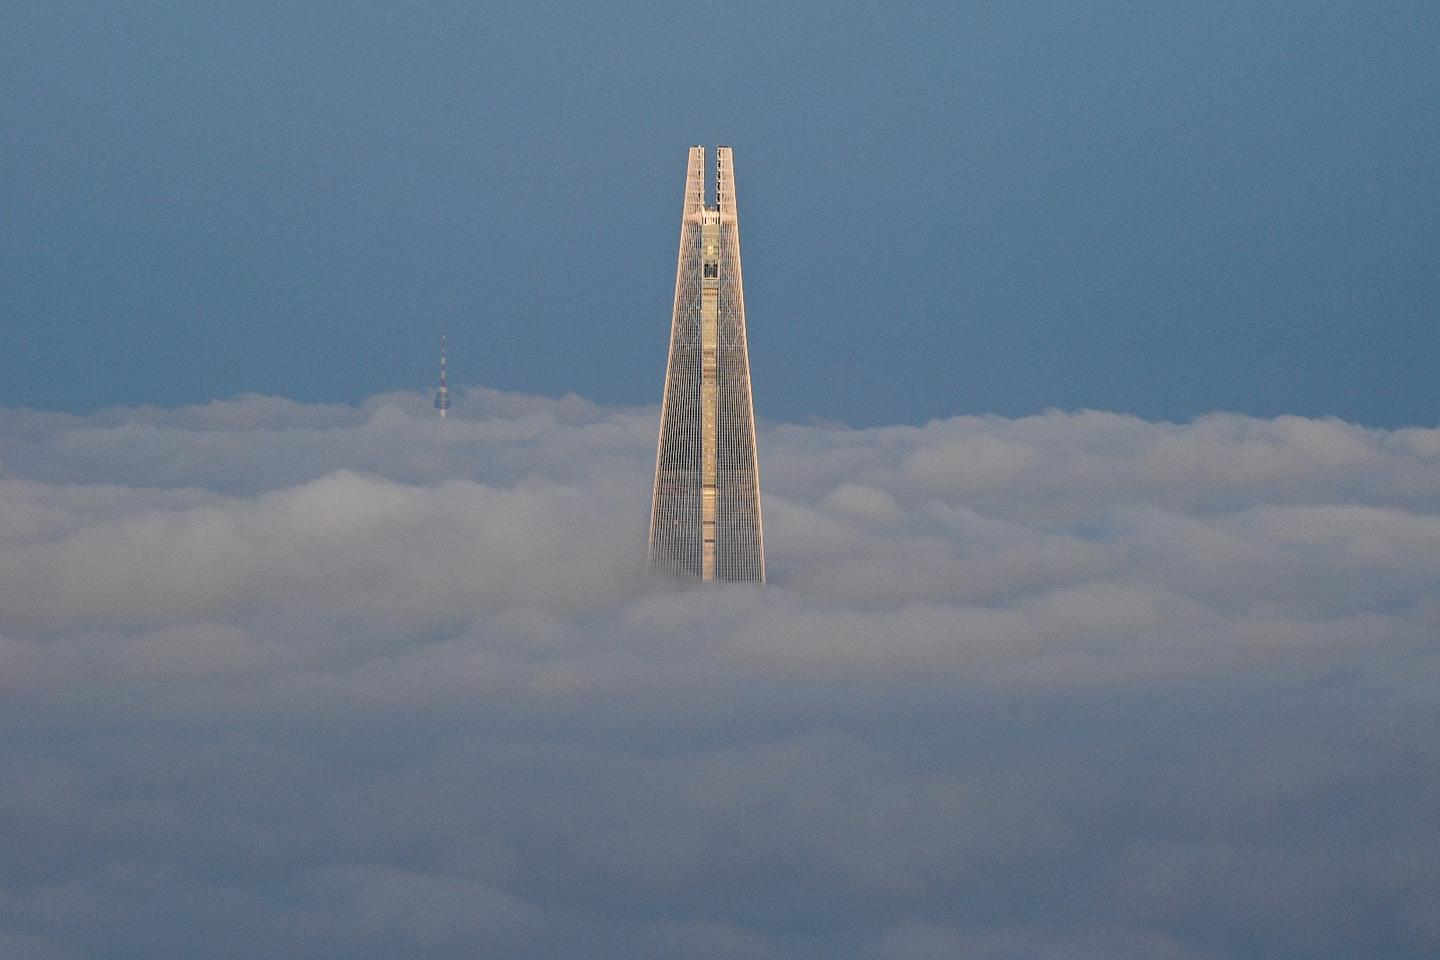 The Lotte World Toweris the world's fifth-tallest building